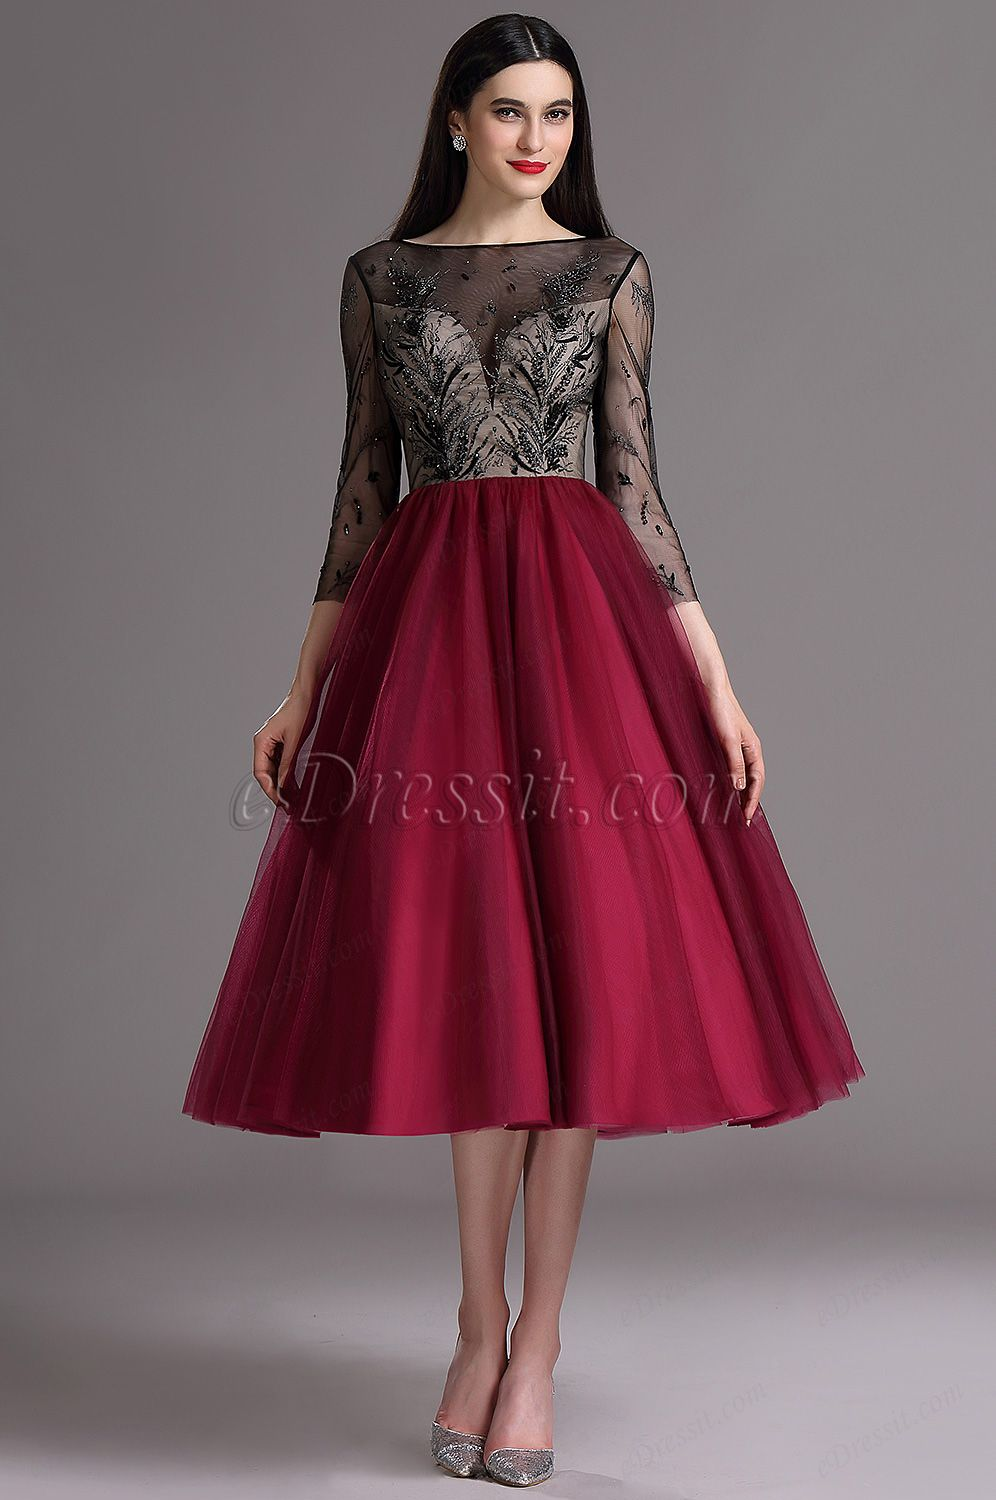 888b5b2e9c Burgundy Tea Length Cocktail Evening Dress with Embroidery (04162217 ...